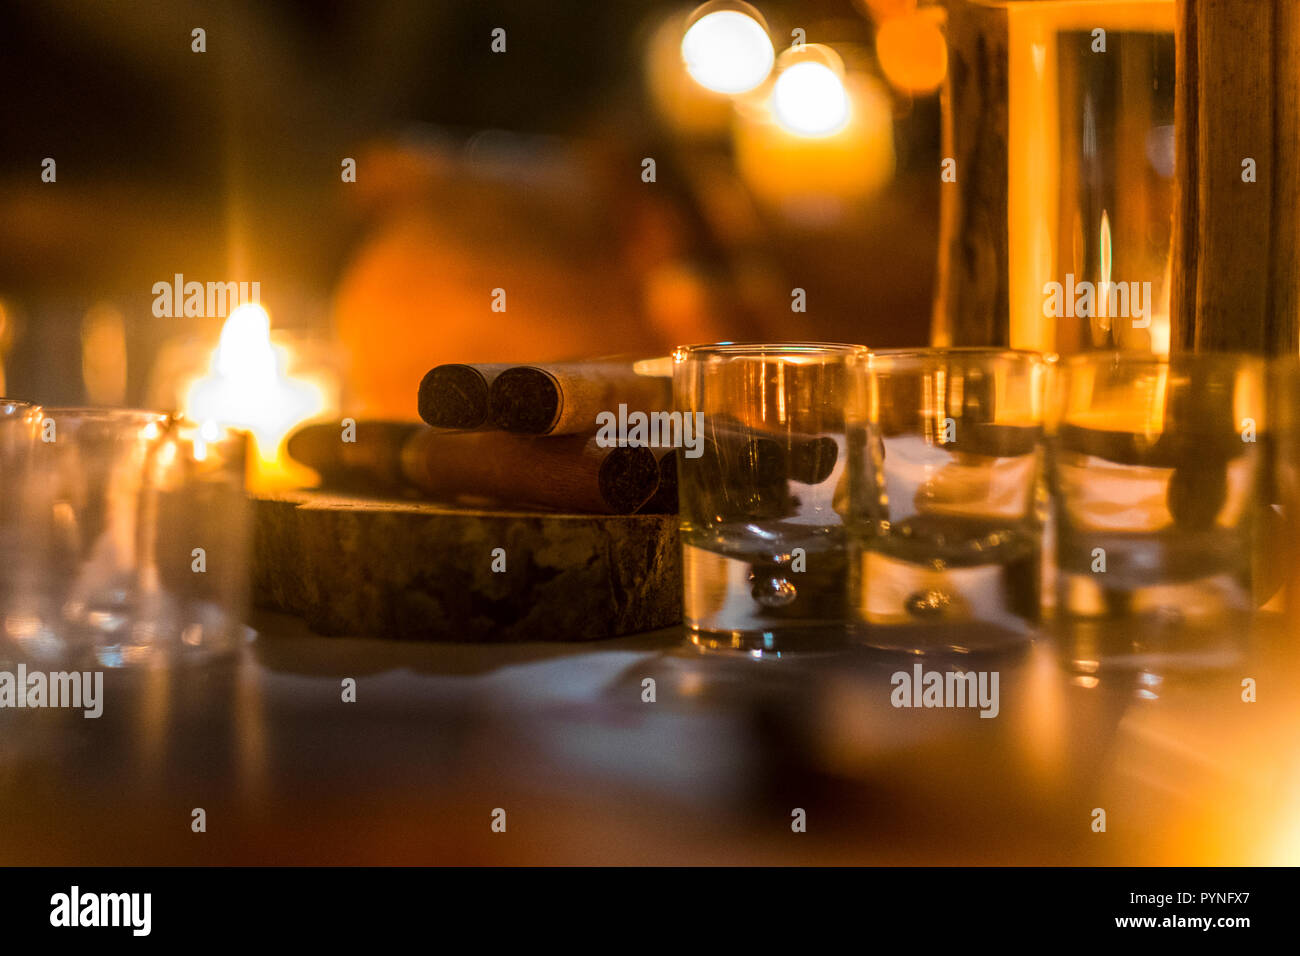 Cigar and rhum rum to end the night in friednship with men's things related. Bokeh and defocused image for conceptual mood about males Stock Photo